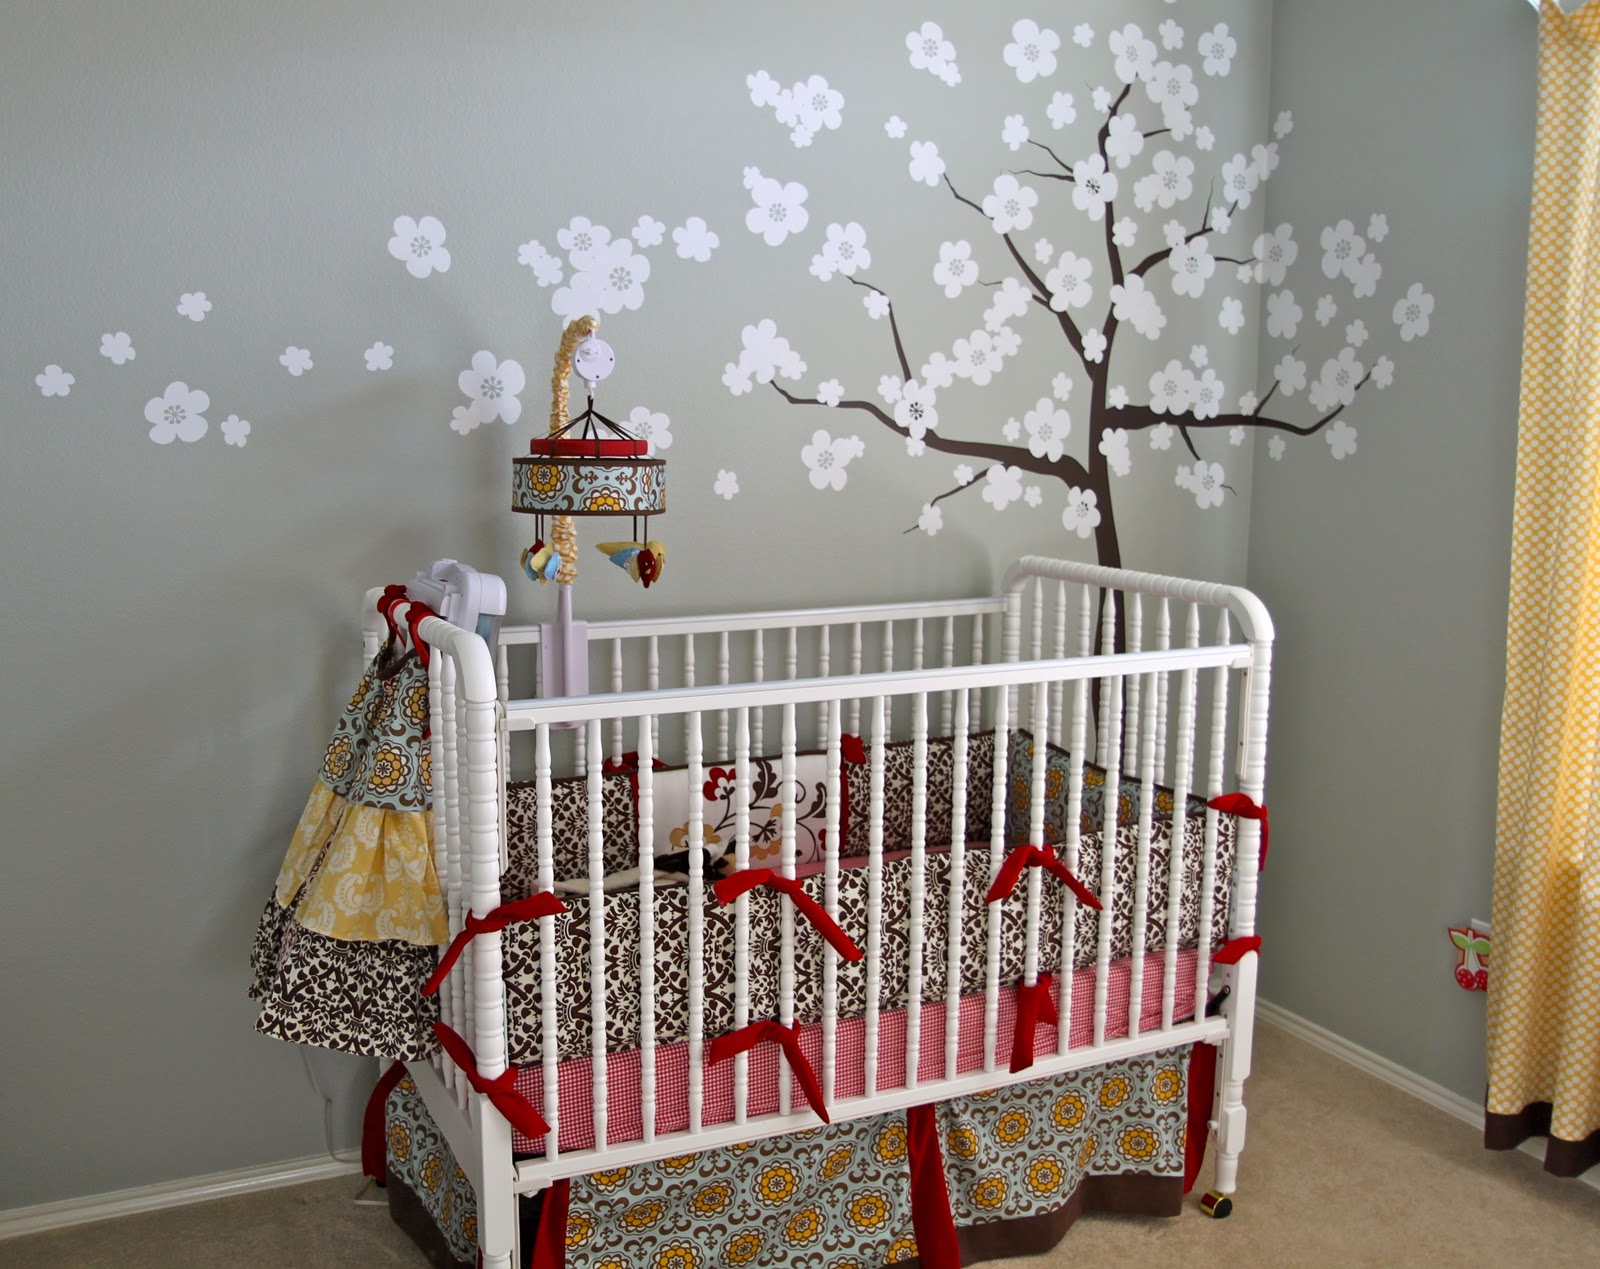 Baby Decorating Baby Nursery It 39 S Quirky And So Cute Design Dazzle